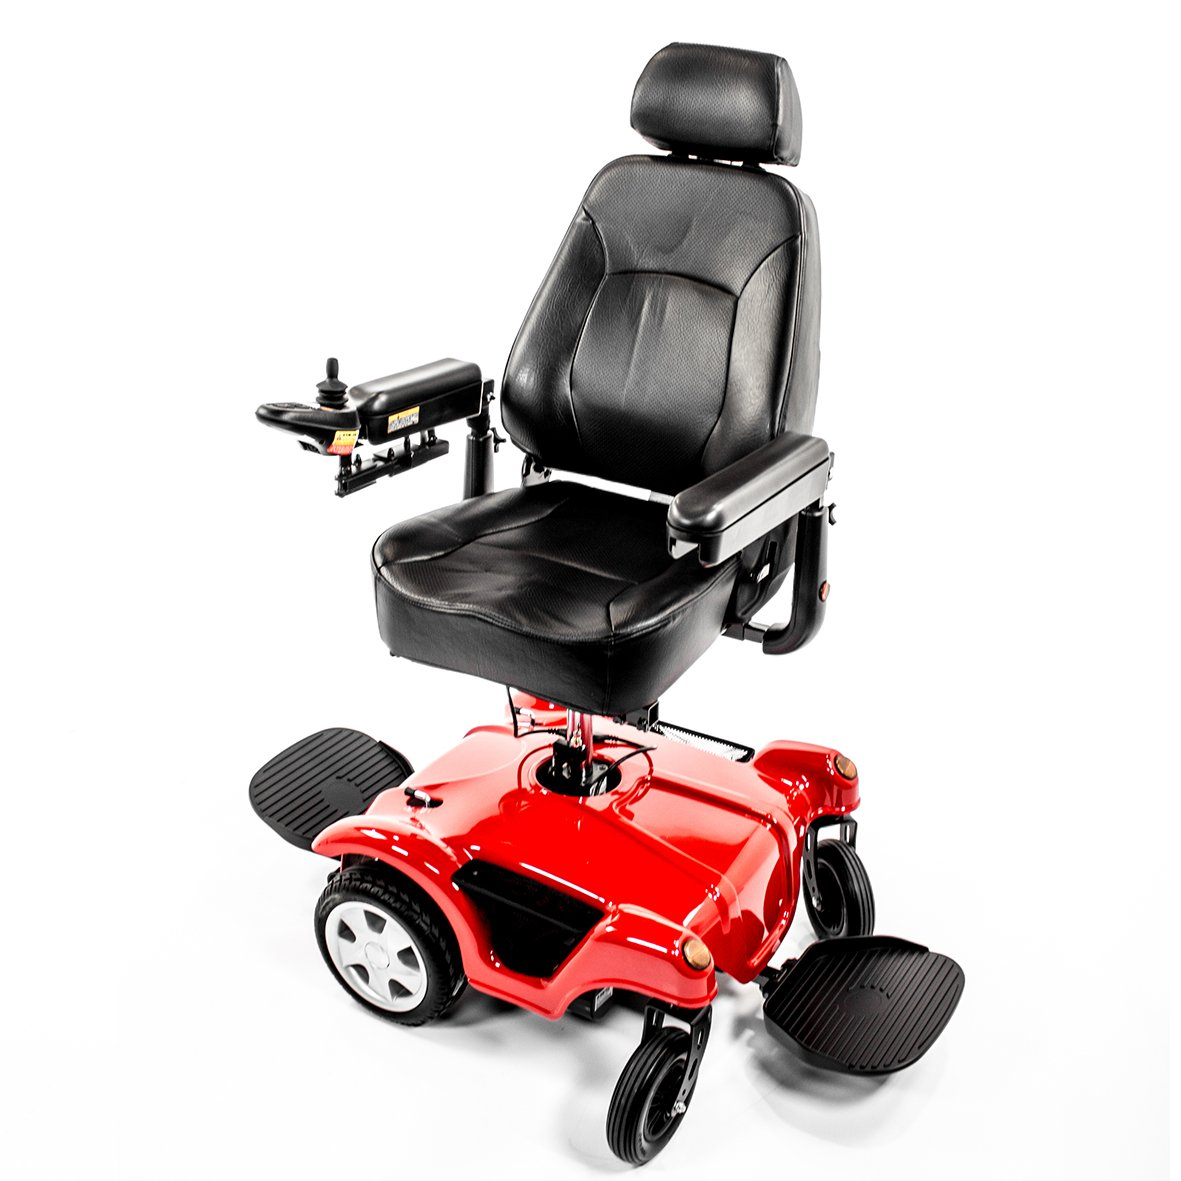 Merits P312 FWD/RWD Dual Base TurnAbout Powerchair with Elevated Power Seat